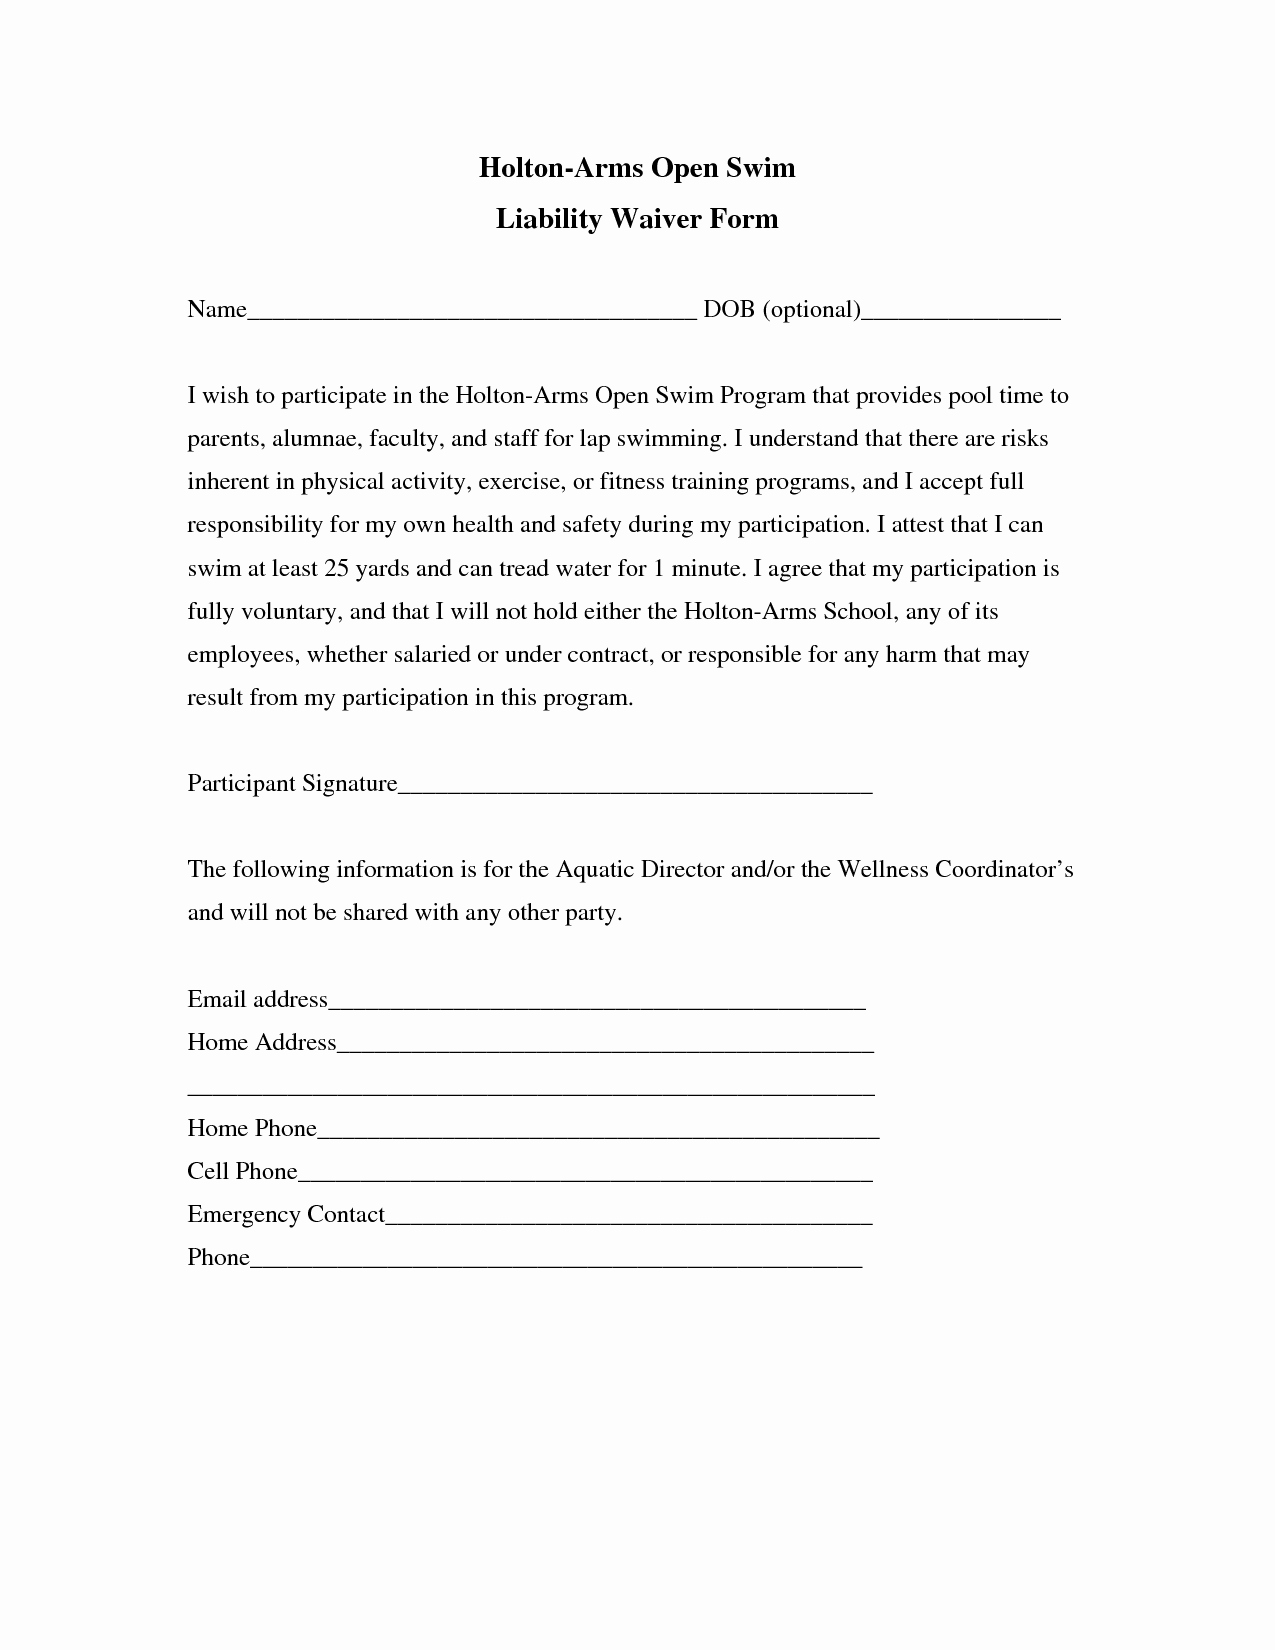 Release Of Liability form Template Beautiful Liability Release form Template Free Printable Documents